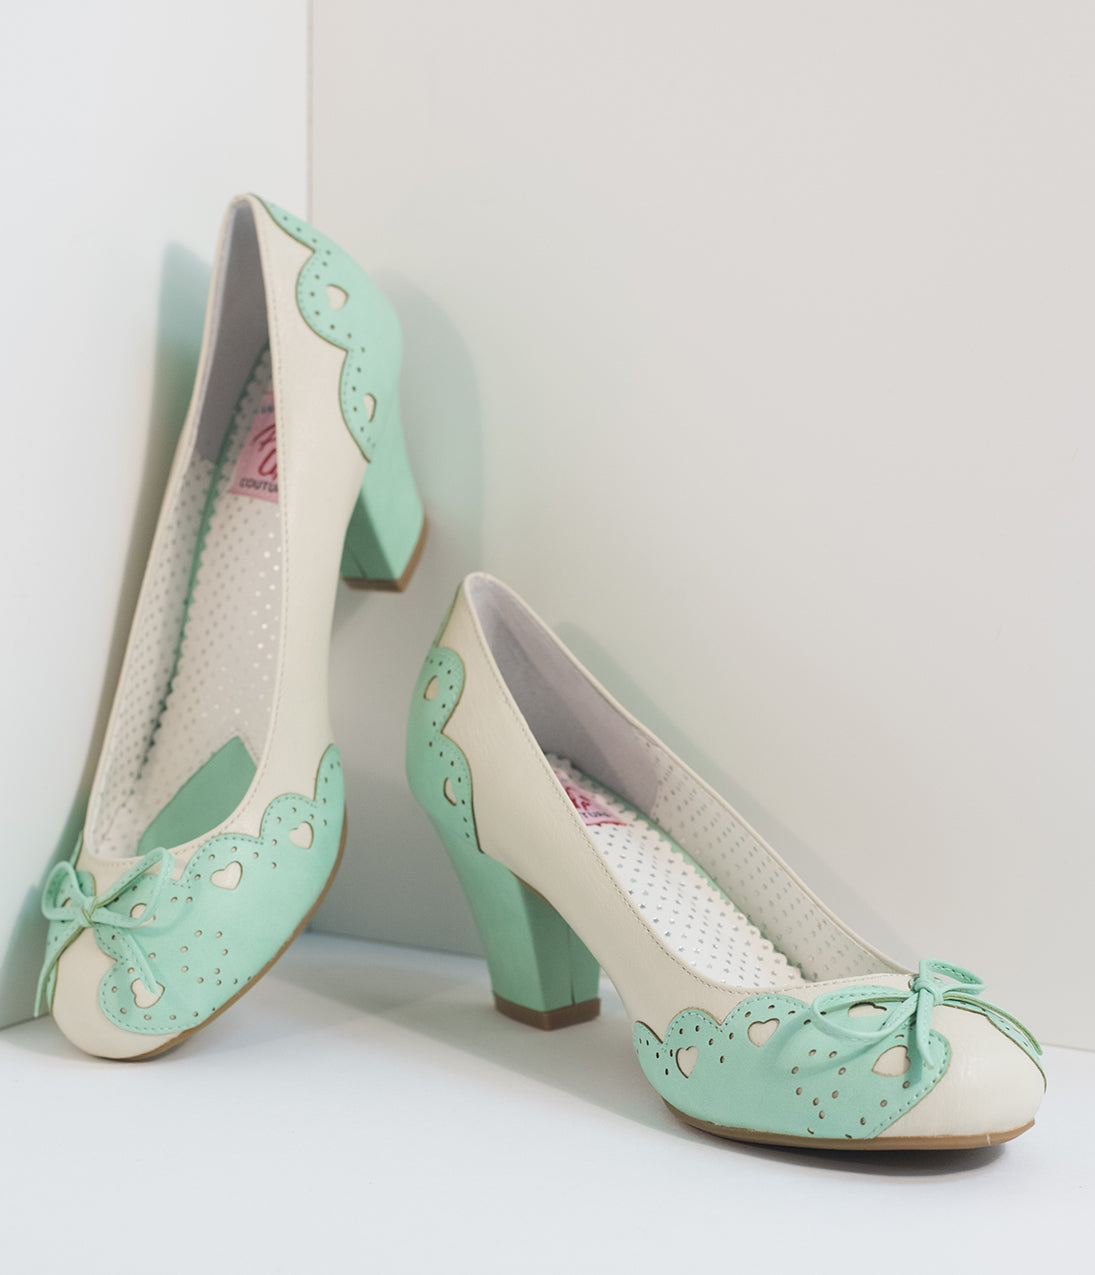 1950s Style Shoes Vintage Style Mint  Cream Cutout Leatherette Wiggle Pumps $68.00 AT vintagedancer.com